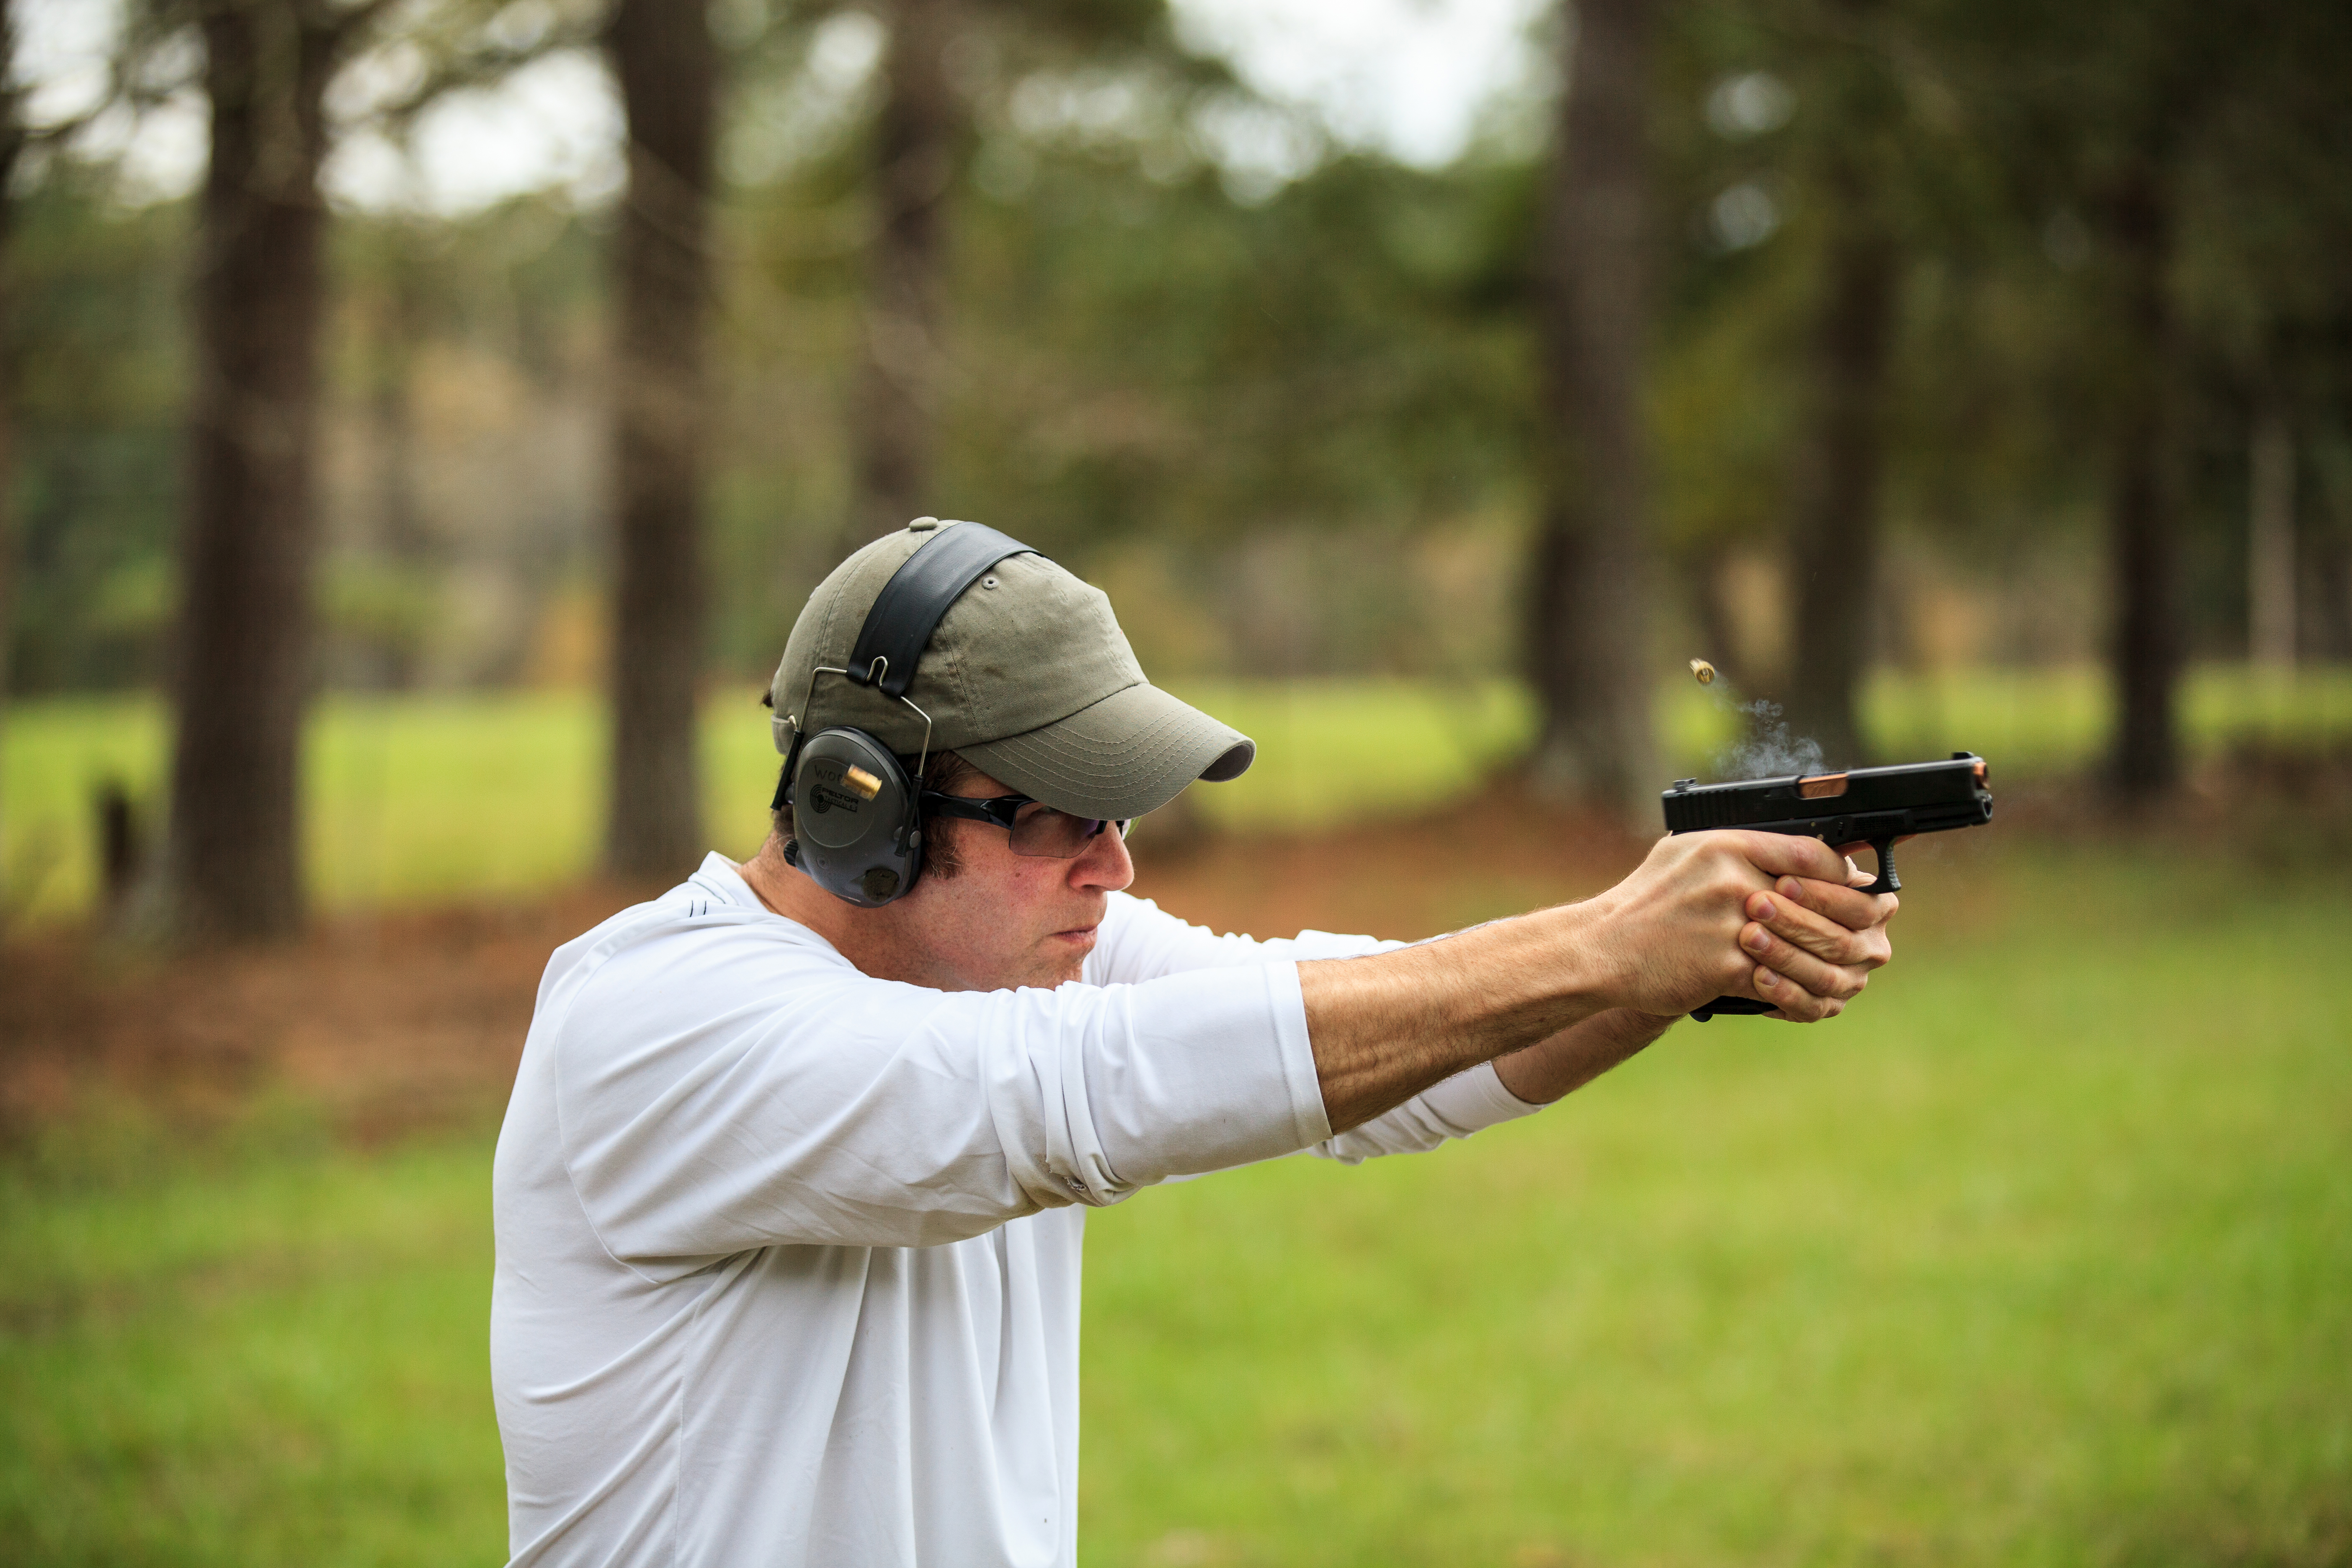 NRA Carry Guard Intermediate Course After Action Report